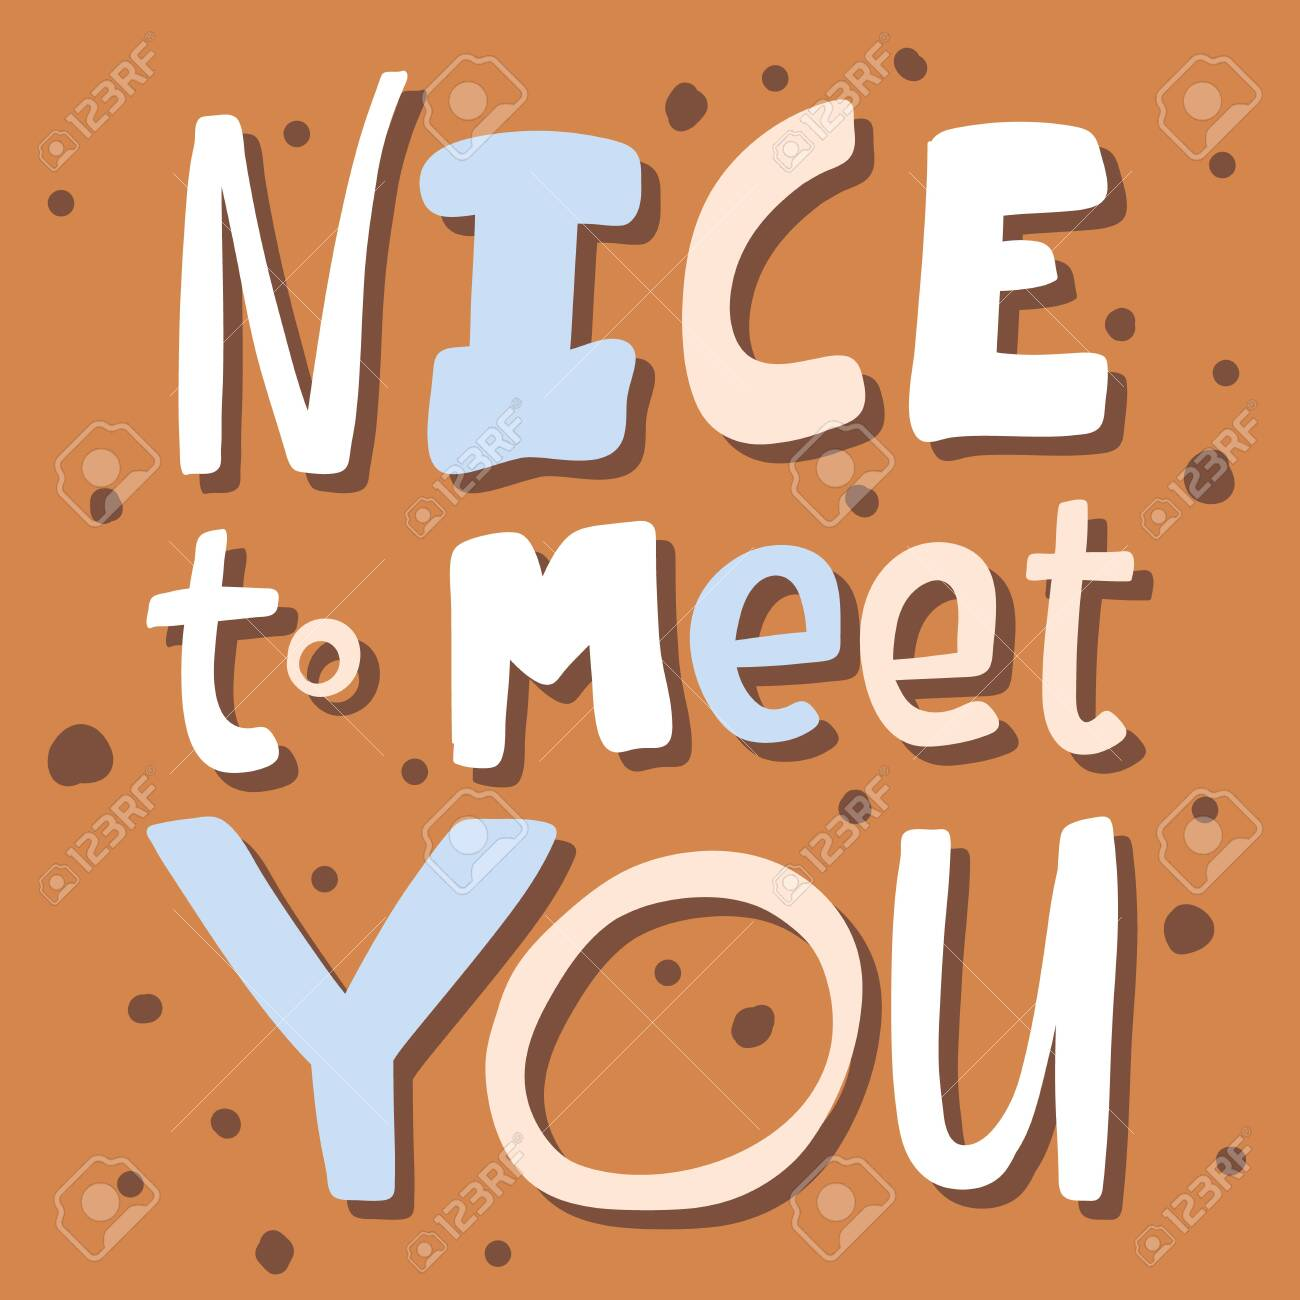 Nice to meet you. Sticker for social media content. Vector hand drawn illustration design. - 151543762